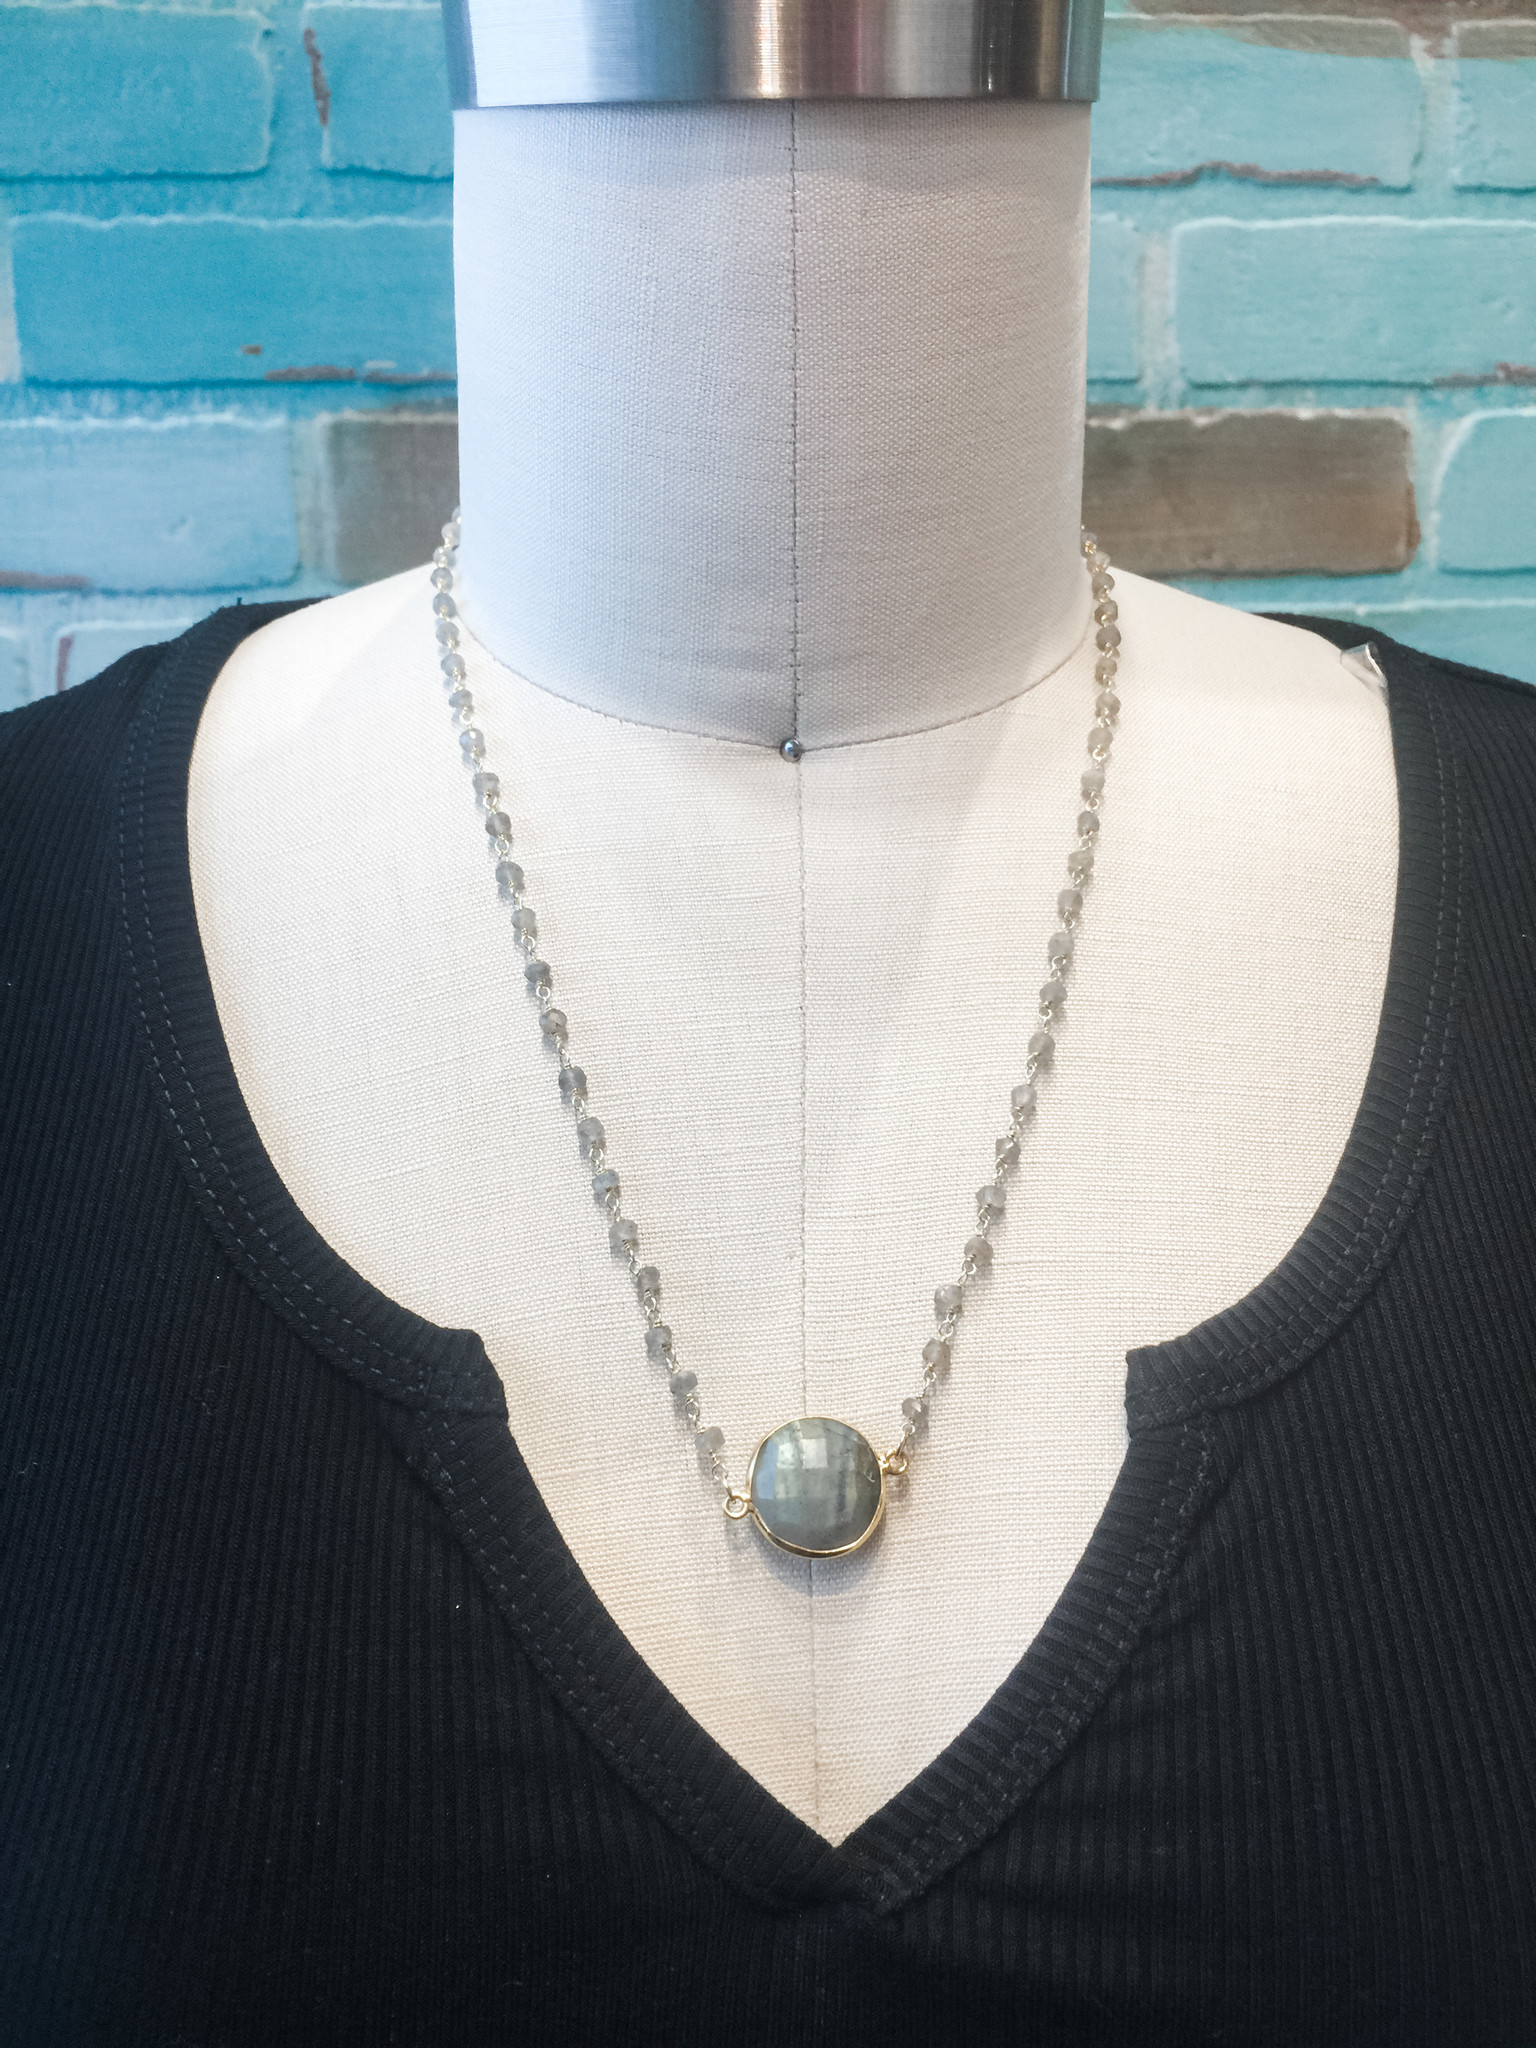 Mary Kathryn Designs Known Shapes Necklace Stone